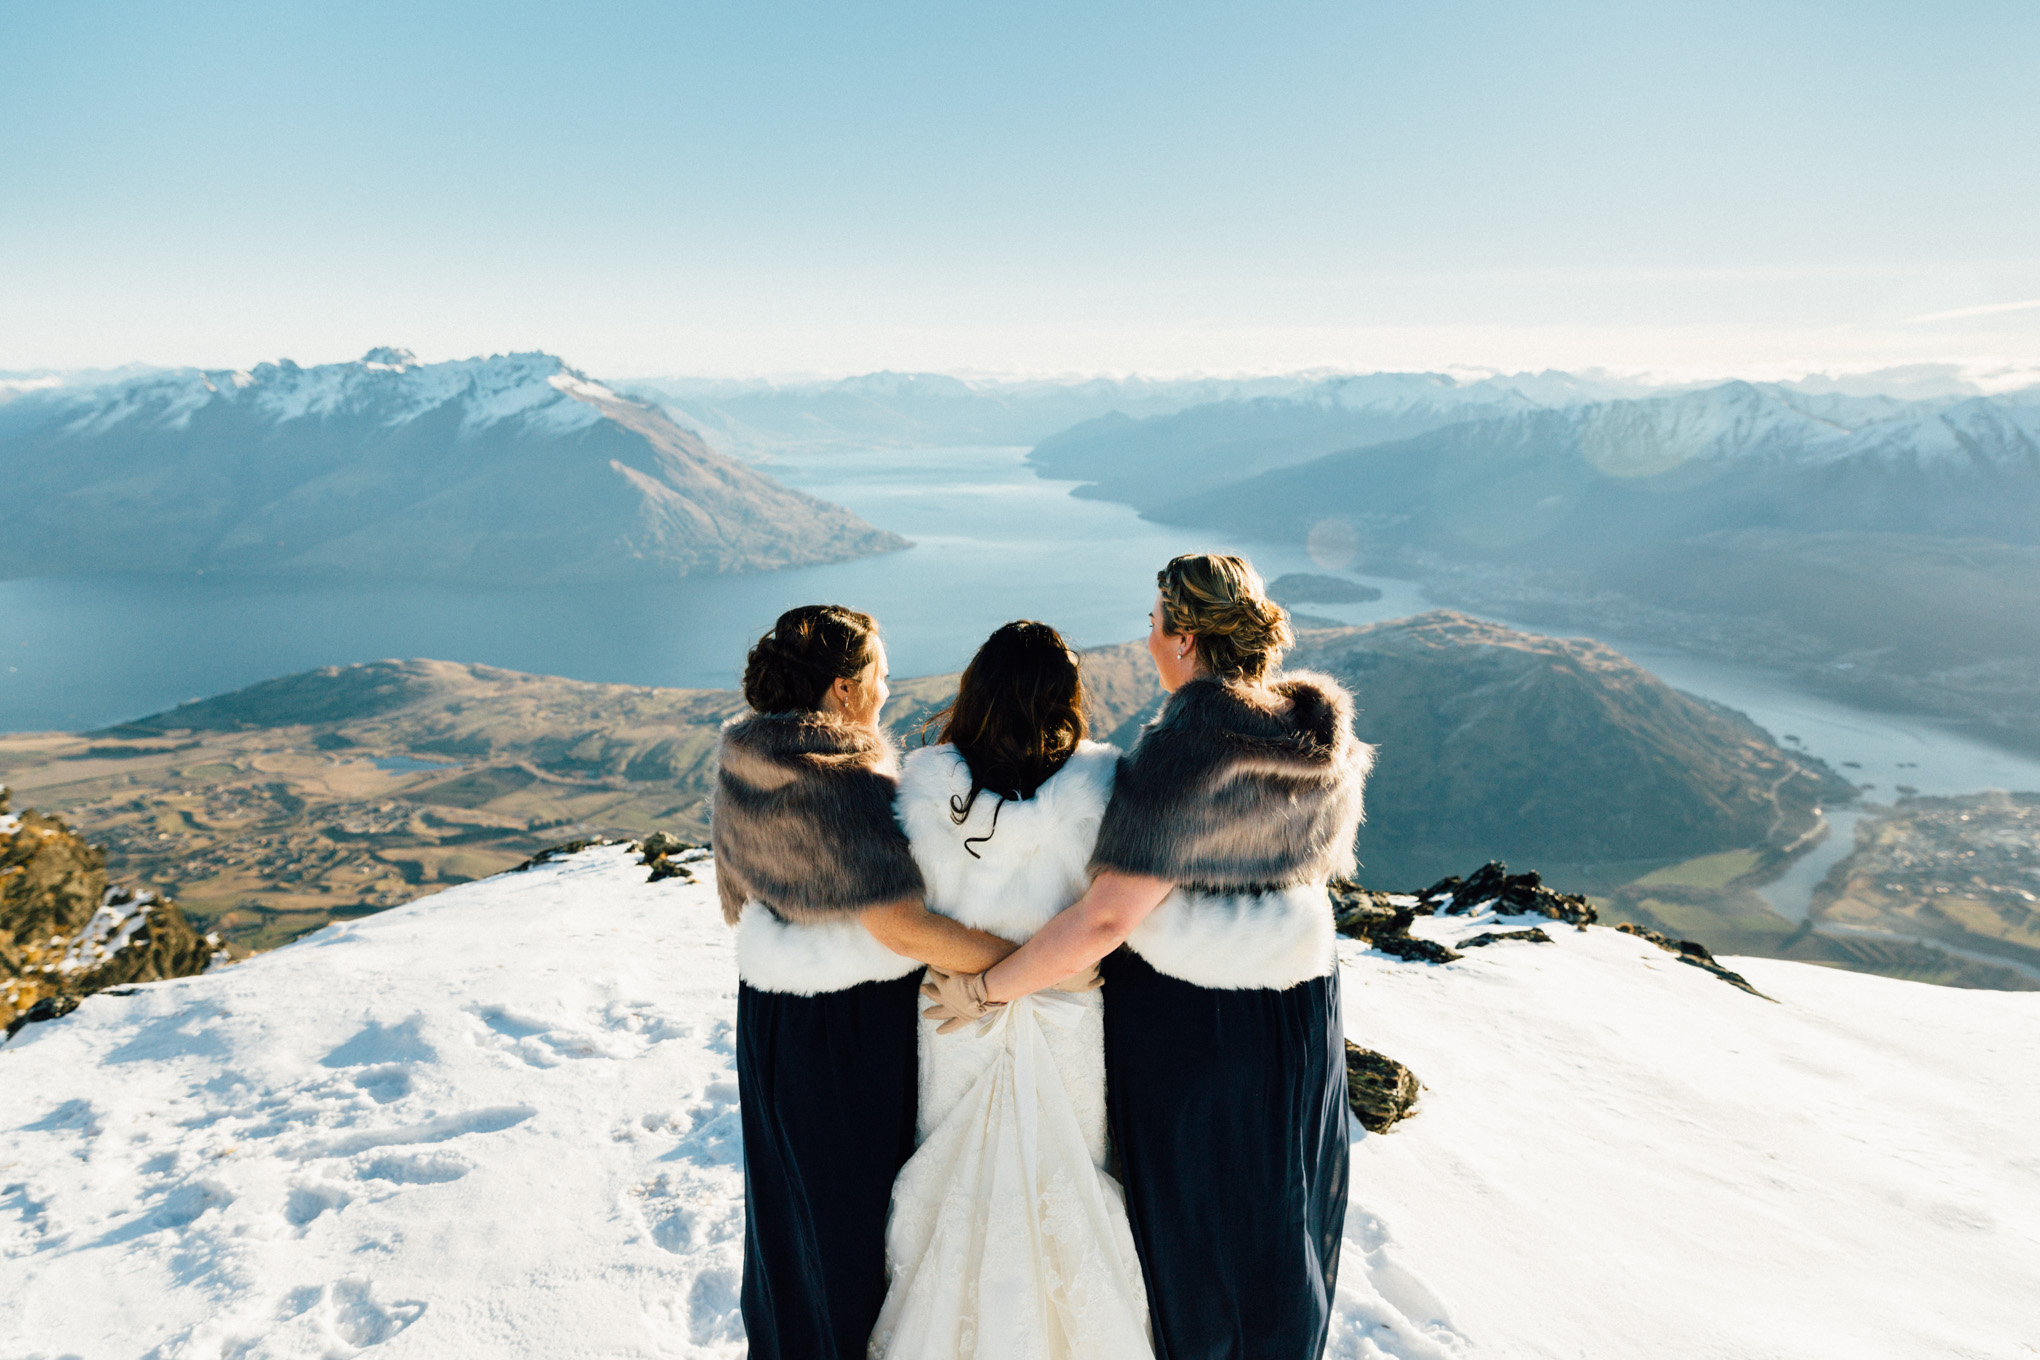 bridesmaid and bride snow wedding